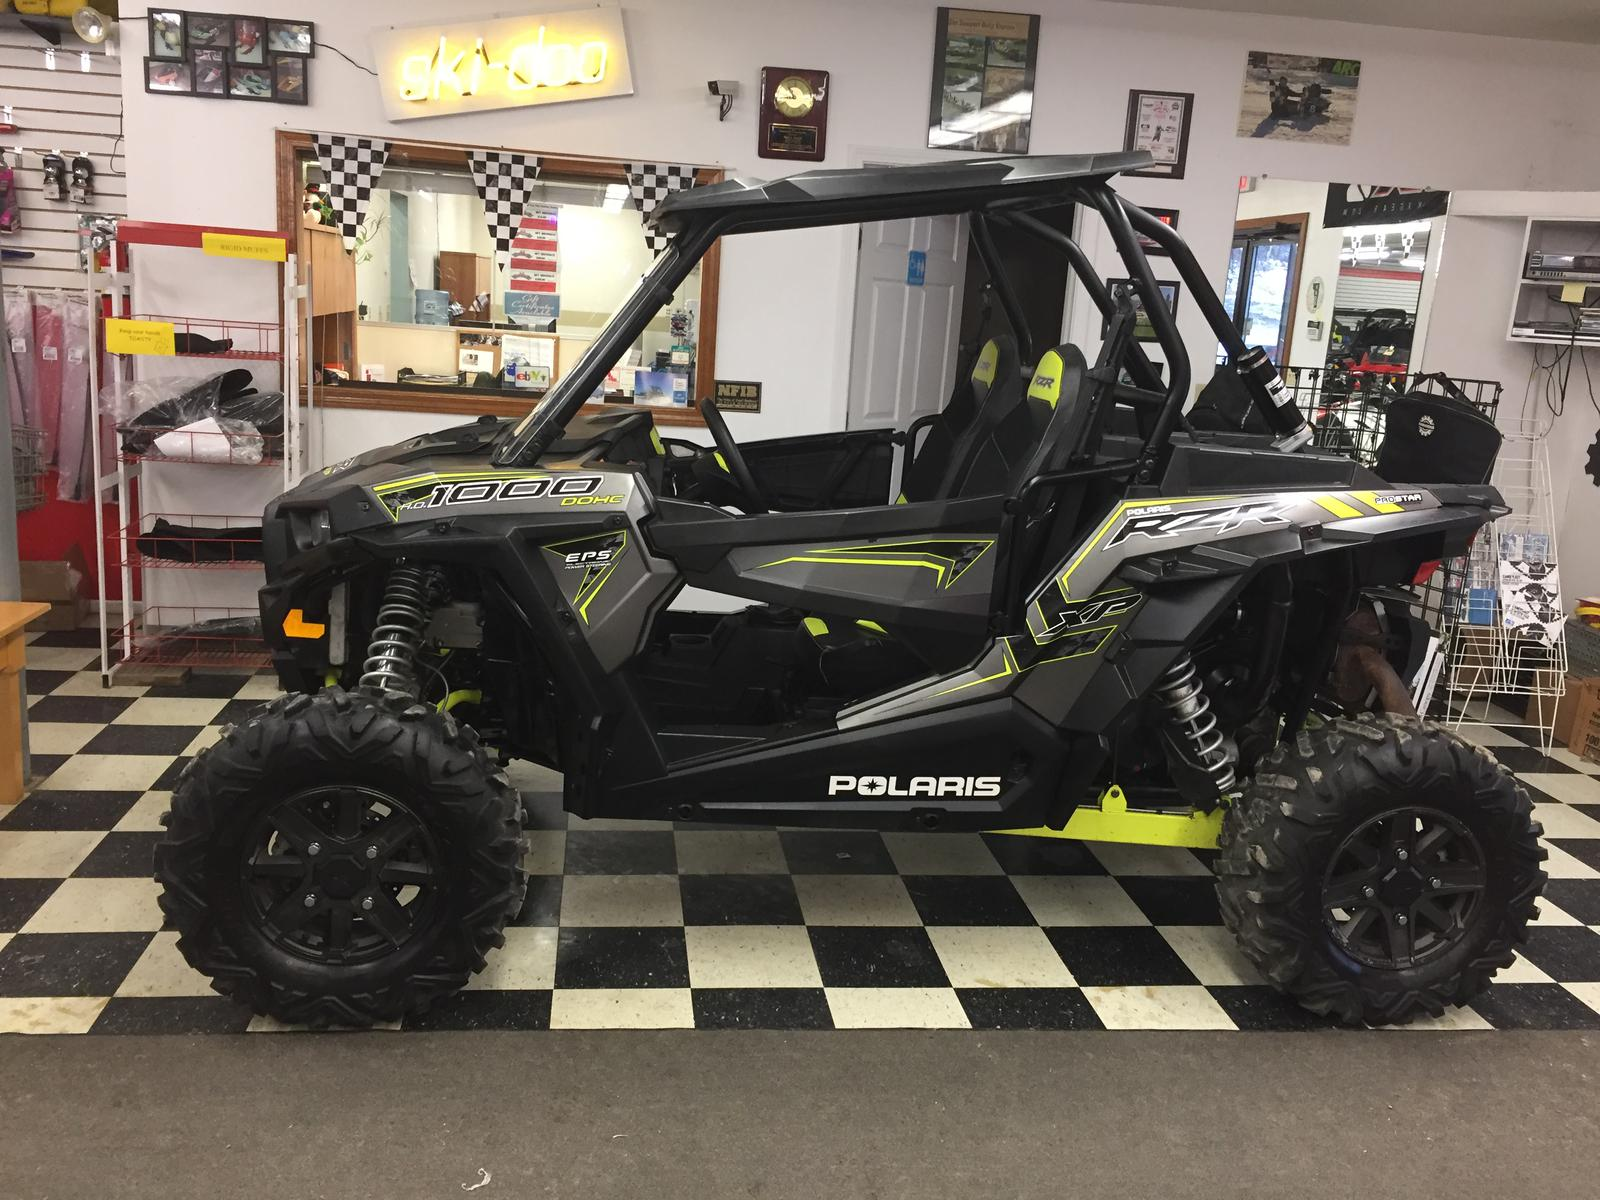 2016 Polaris Industries Rzr Xp 1000 Eps Anium Matte Metallic For In Newport Vt Atvparts 802 487